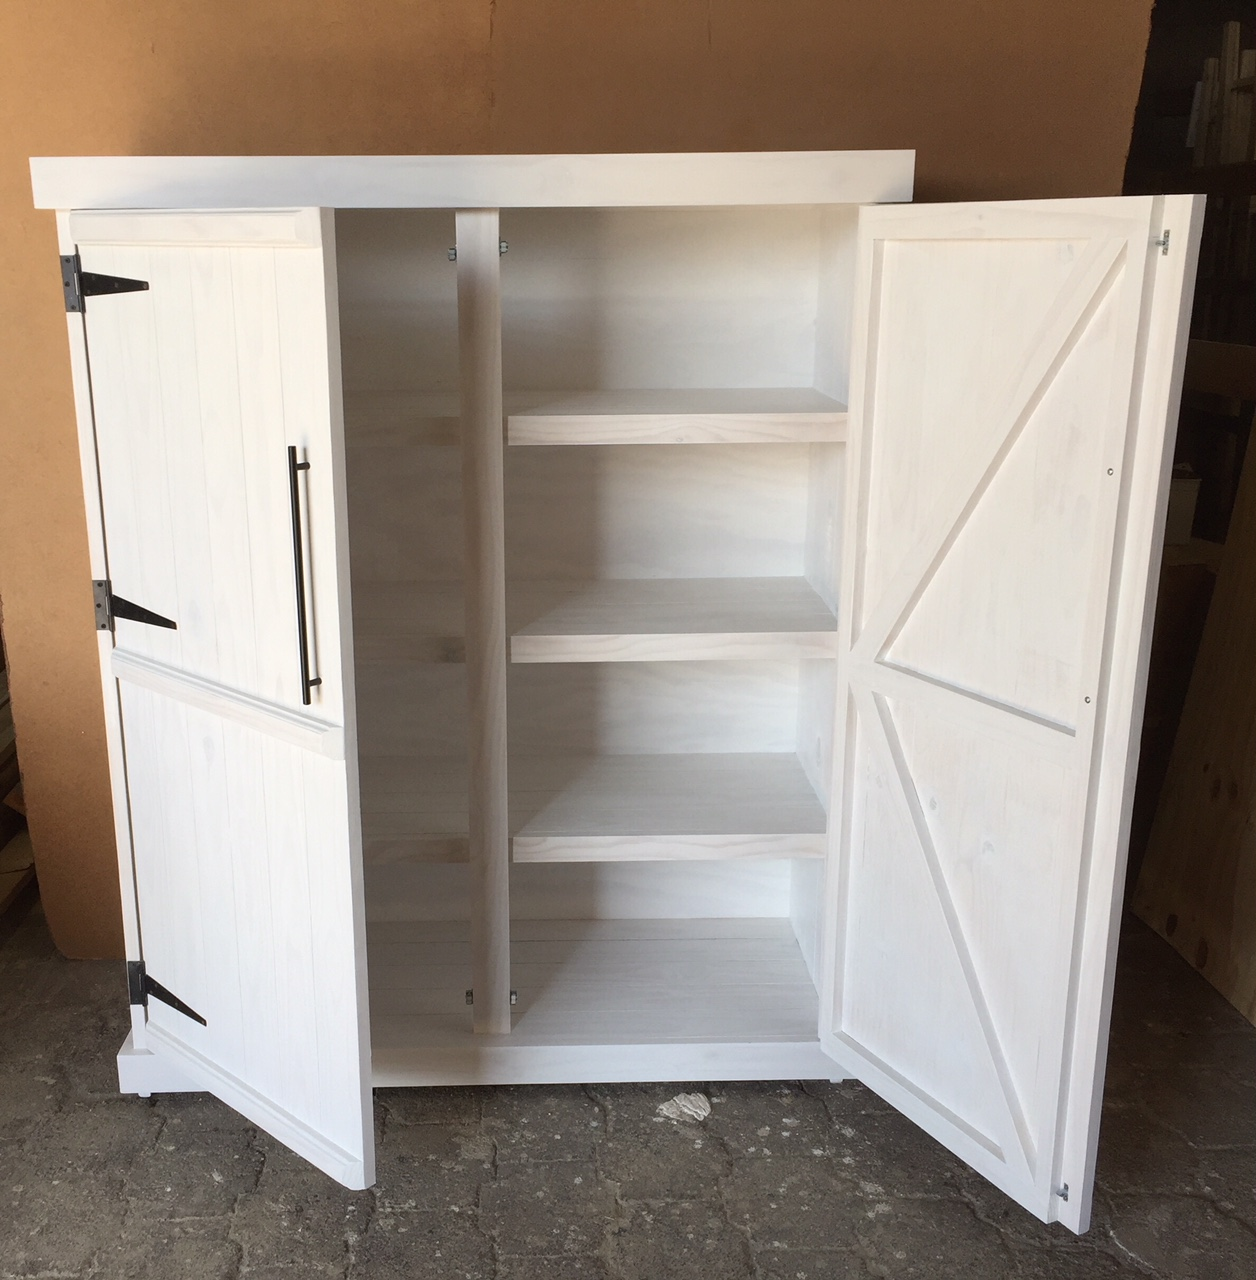 Grocery Cupboard Farmhouse series 1700 extended width - White washed